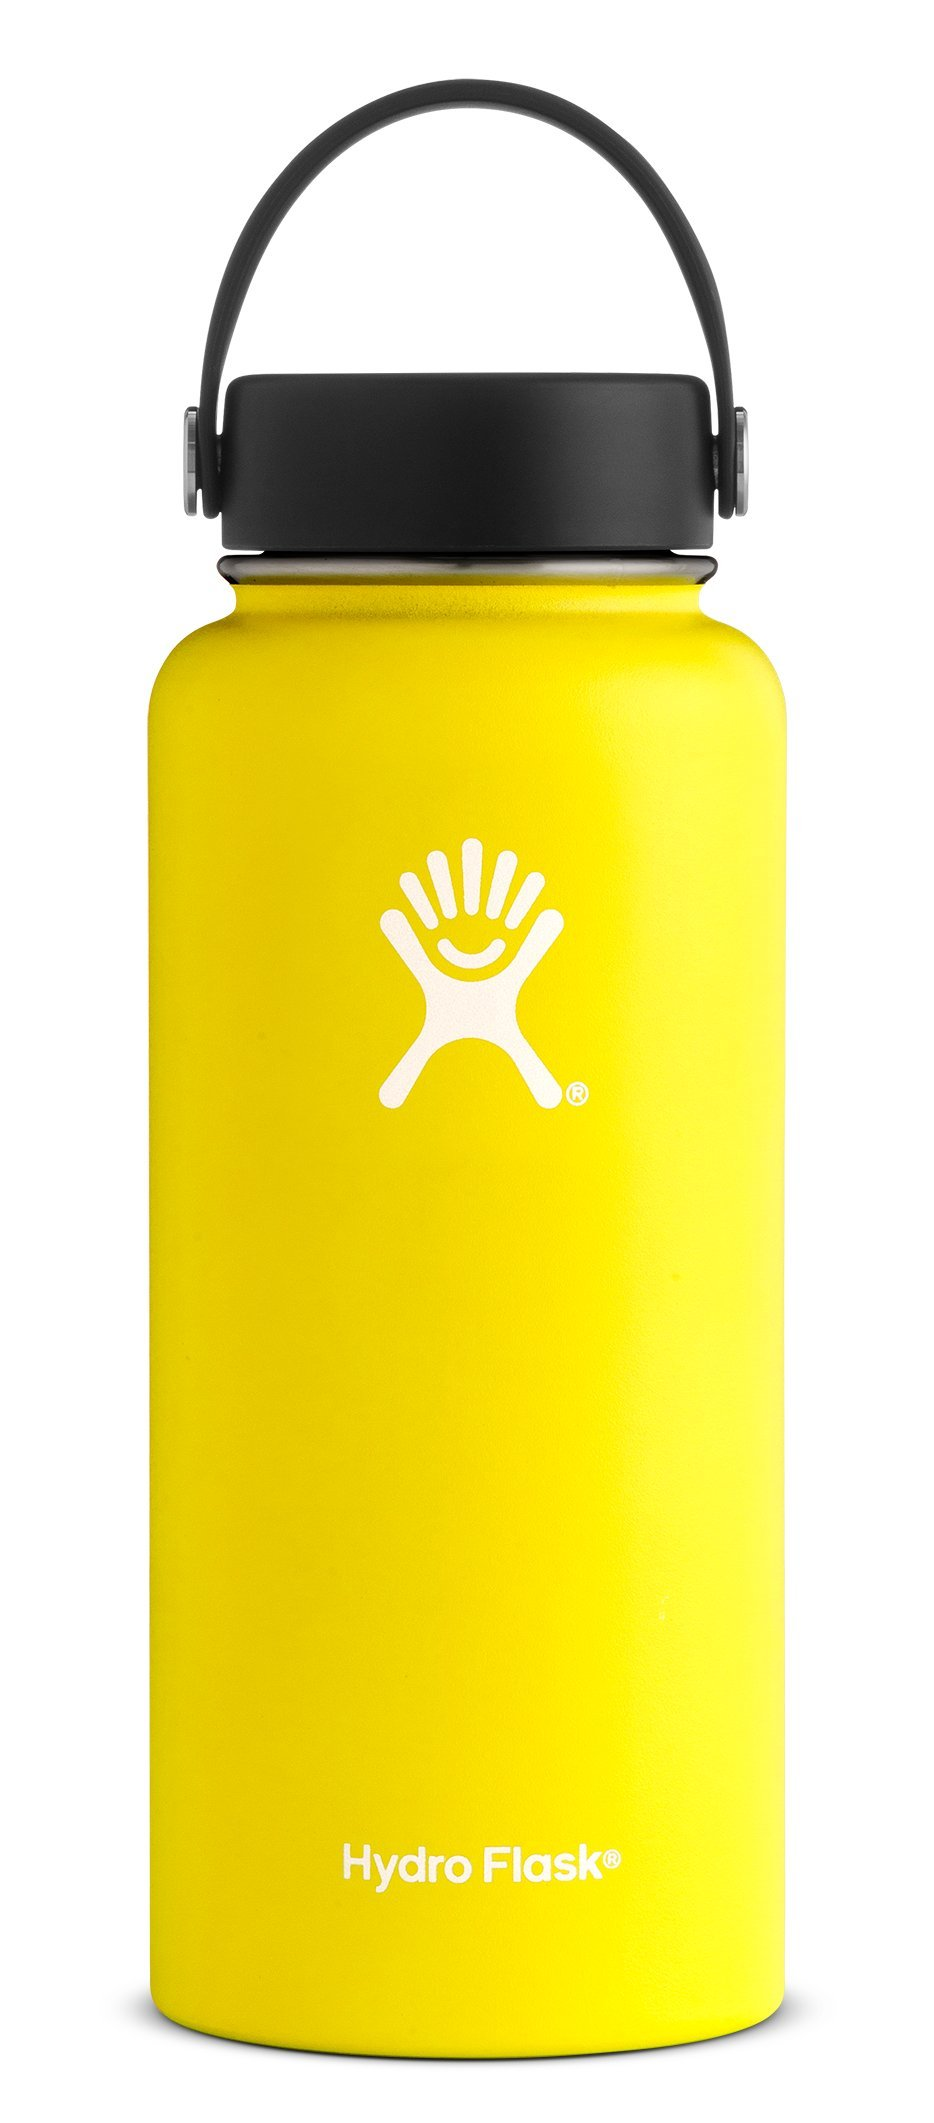 Hydro Flask 32 oz Double Wall Vacuum Insulated Stainless Steel Leak Proof Sports Water Bottle, Wide Mouth with BPA Free Flex Cap, Lemon by Hydro Flask